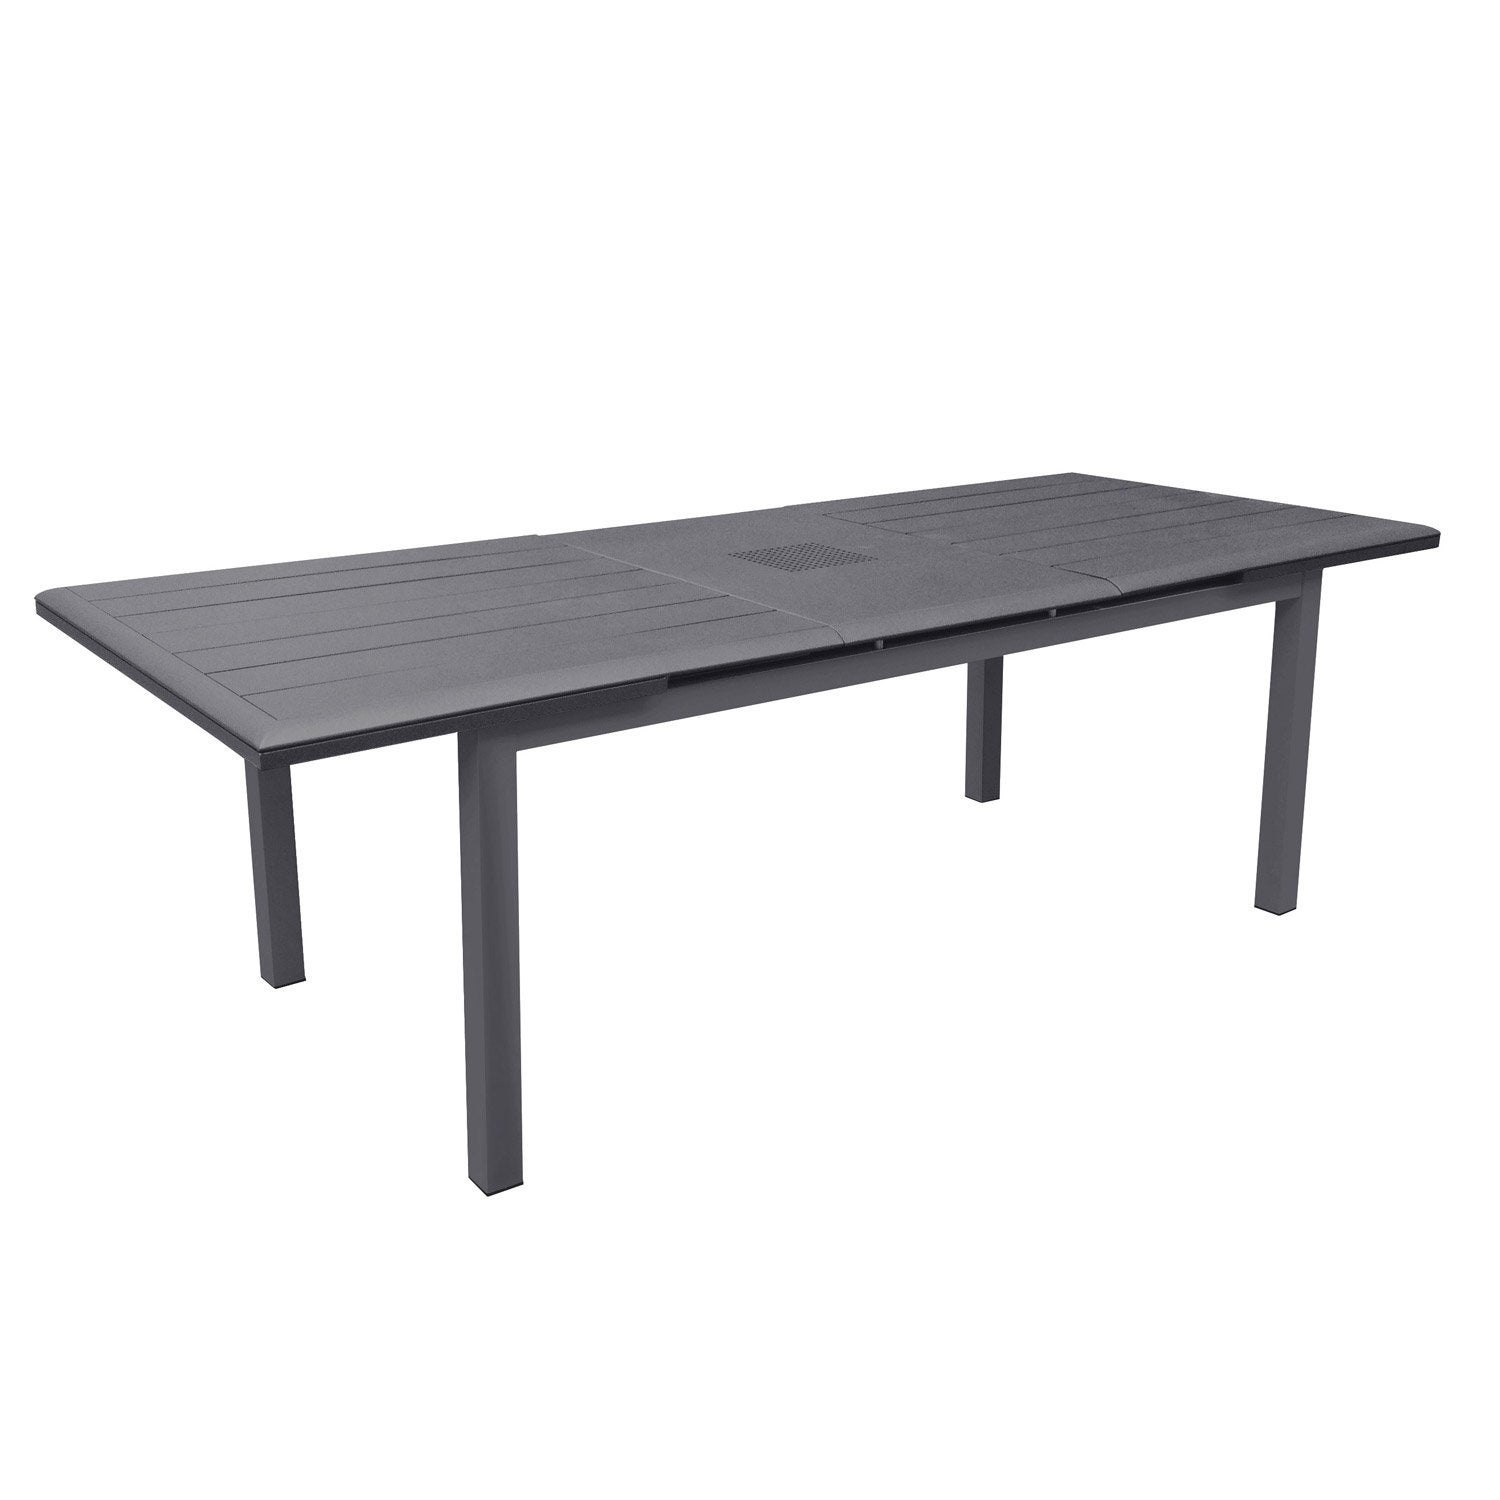 Table de jardin louisiane rectangulaire gris 6 8 personnes for Table exterieur carre 8 personnes